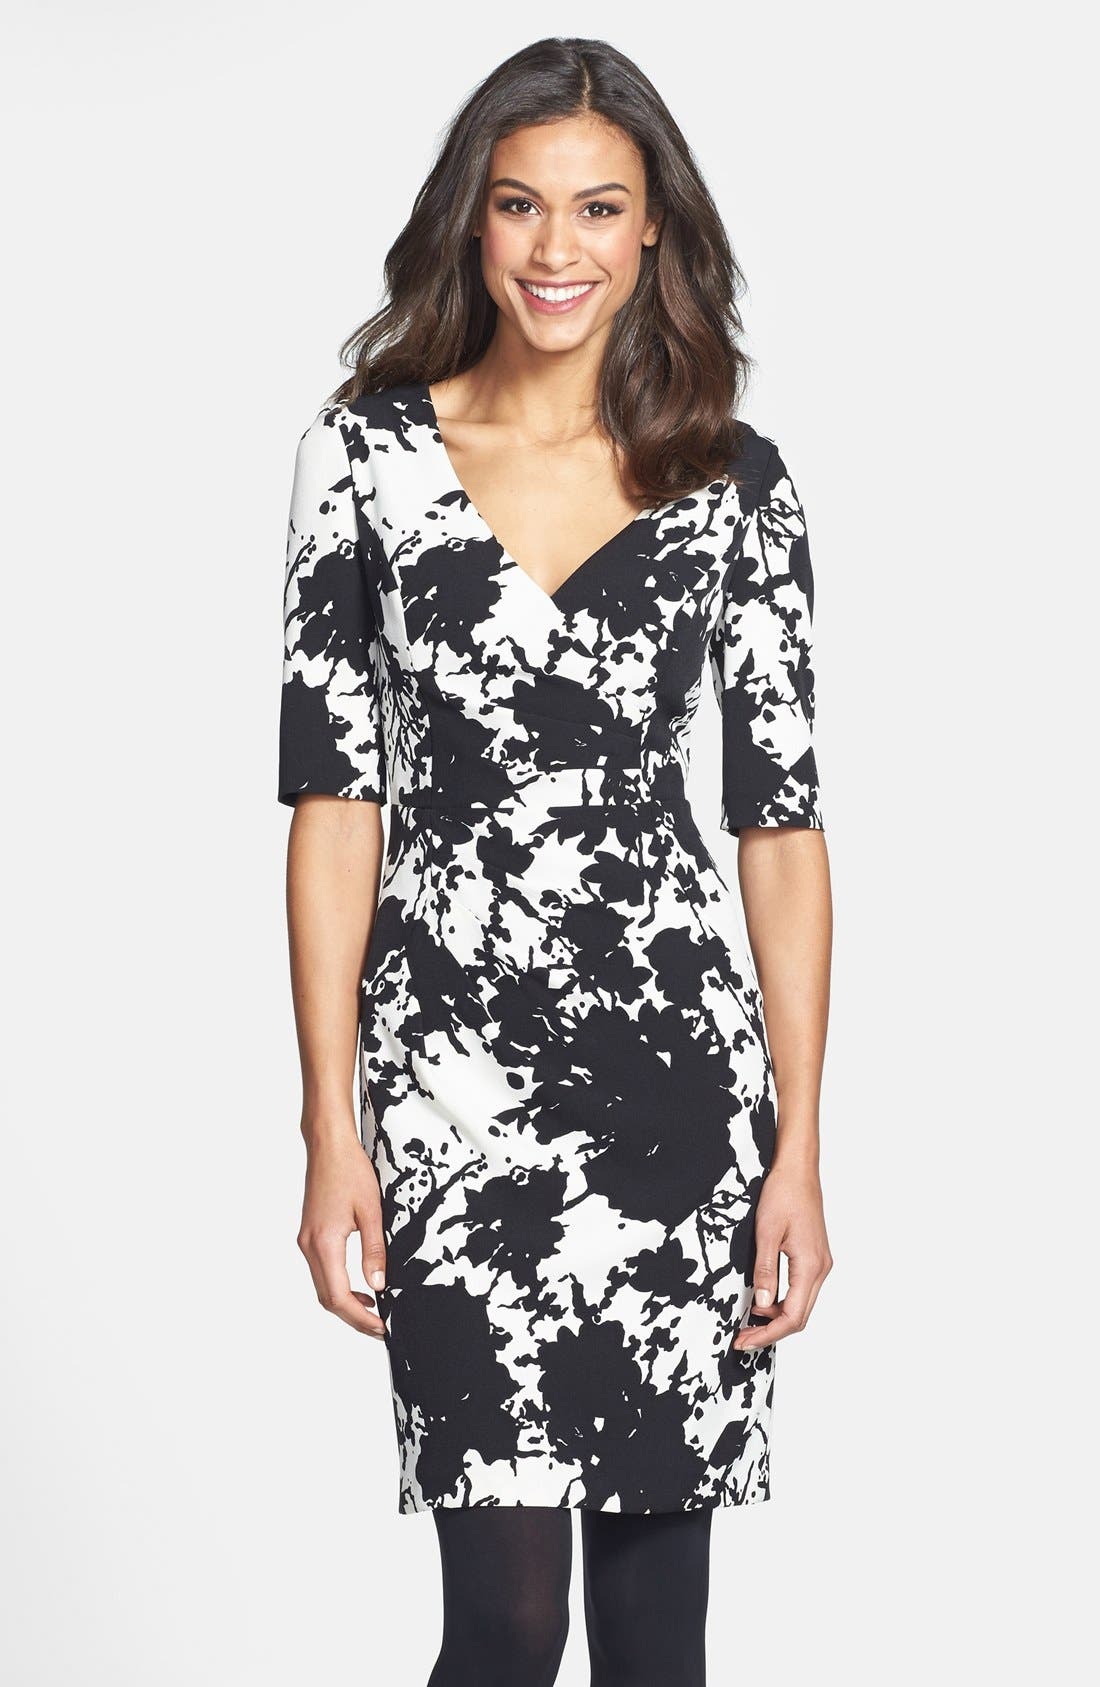 Alternate Image 1 Selected - Adrianna Papell Floral Print Crepe Sheath Dress (Online Only)